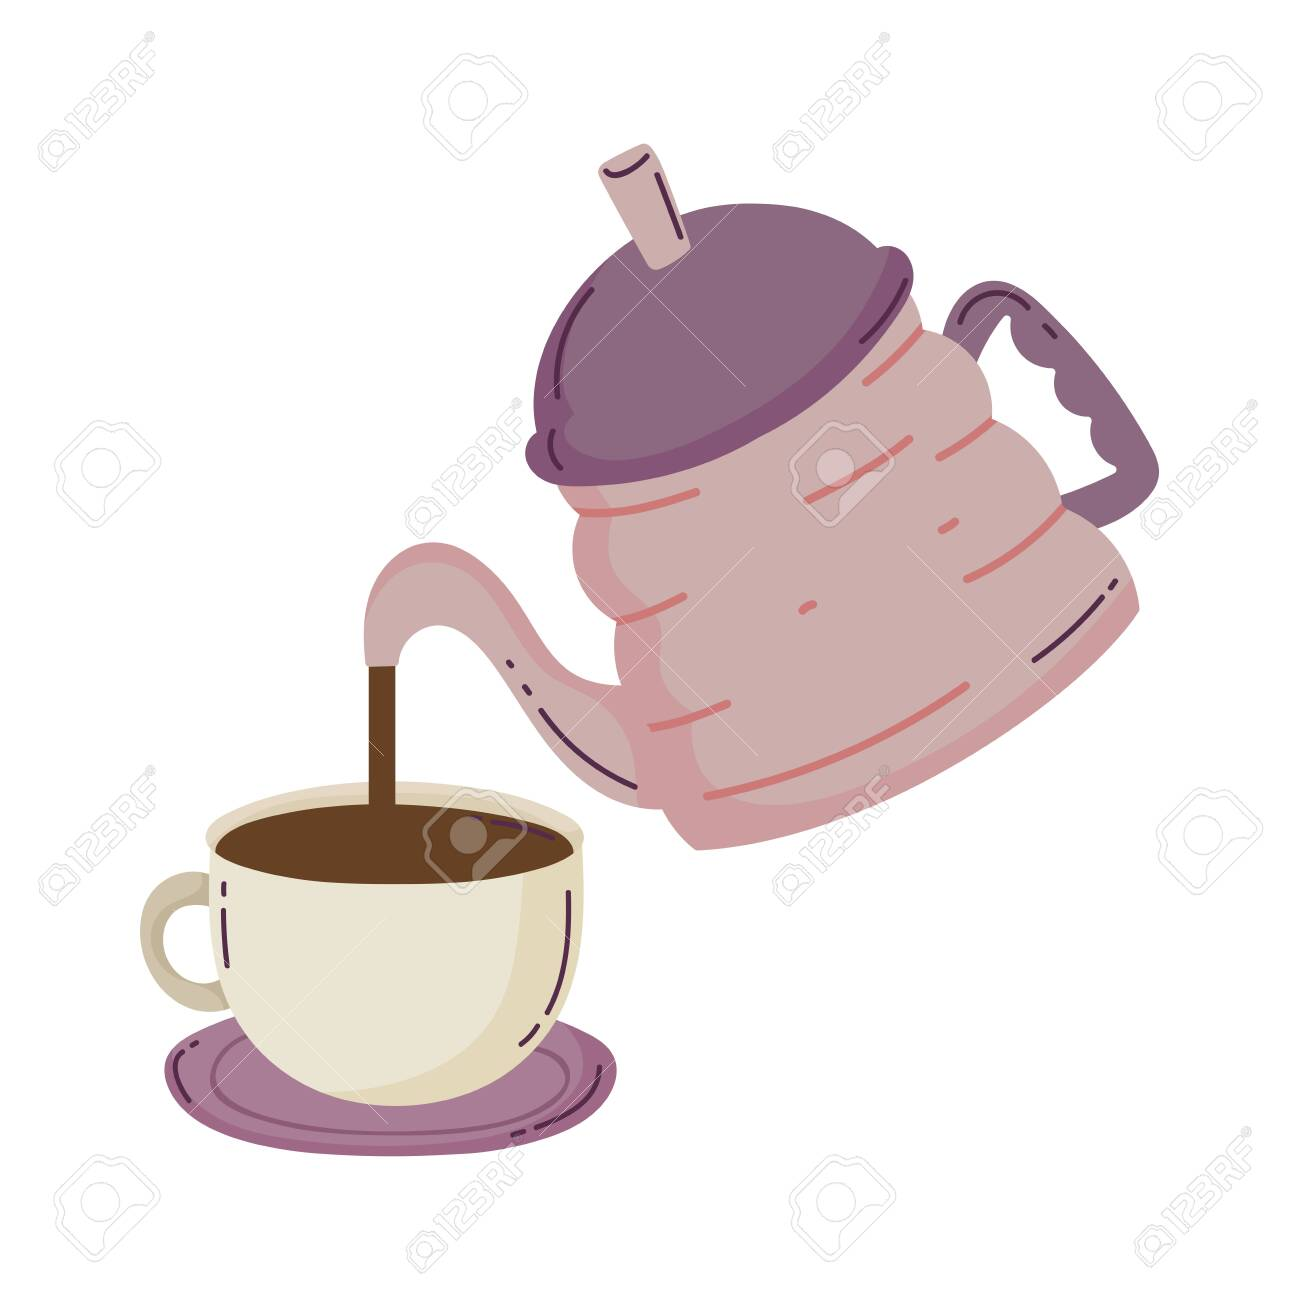 Coffee Brewing Methods Kettle Pouring Coffee Cup On Saucer Vector Royalty Free Cliparts Vectors And Stock Illustration Image 157290158